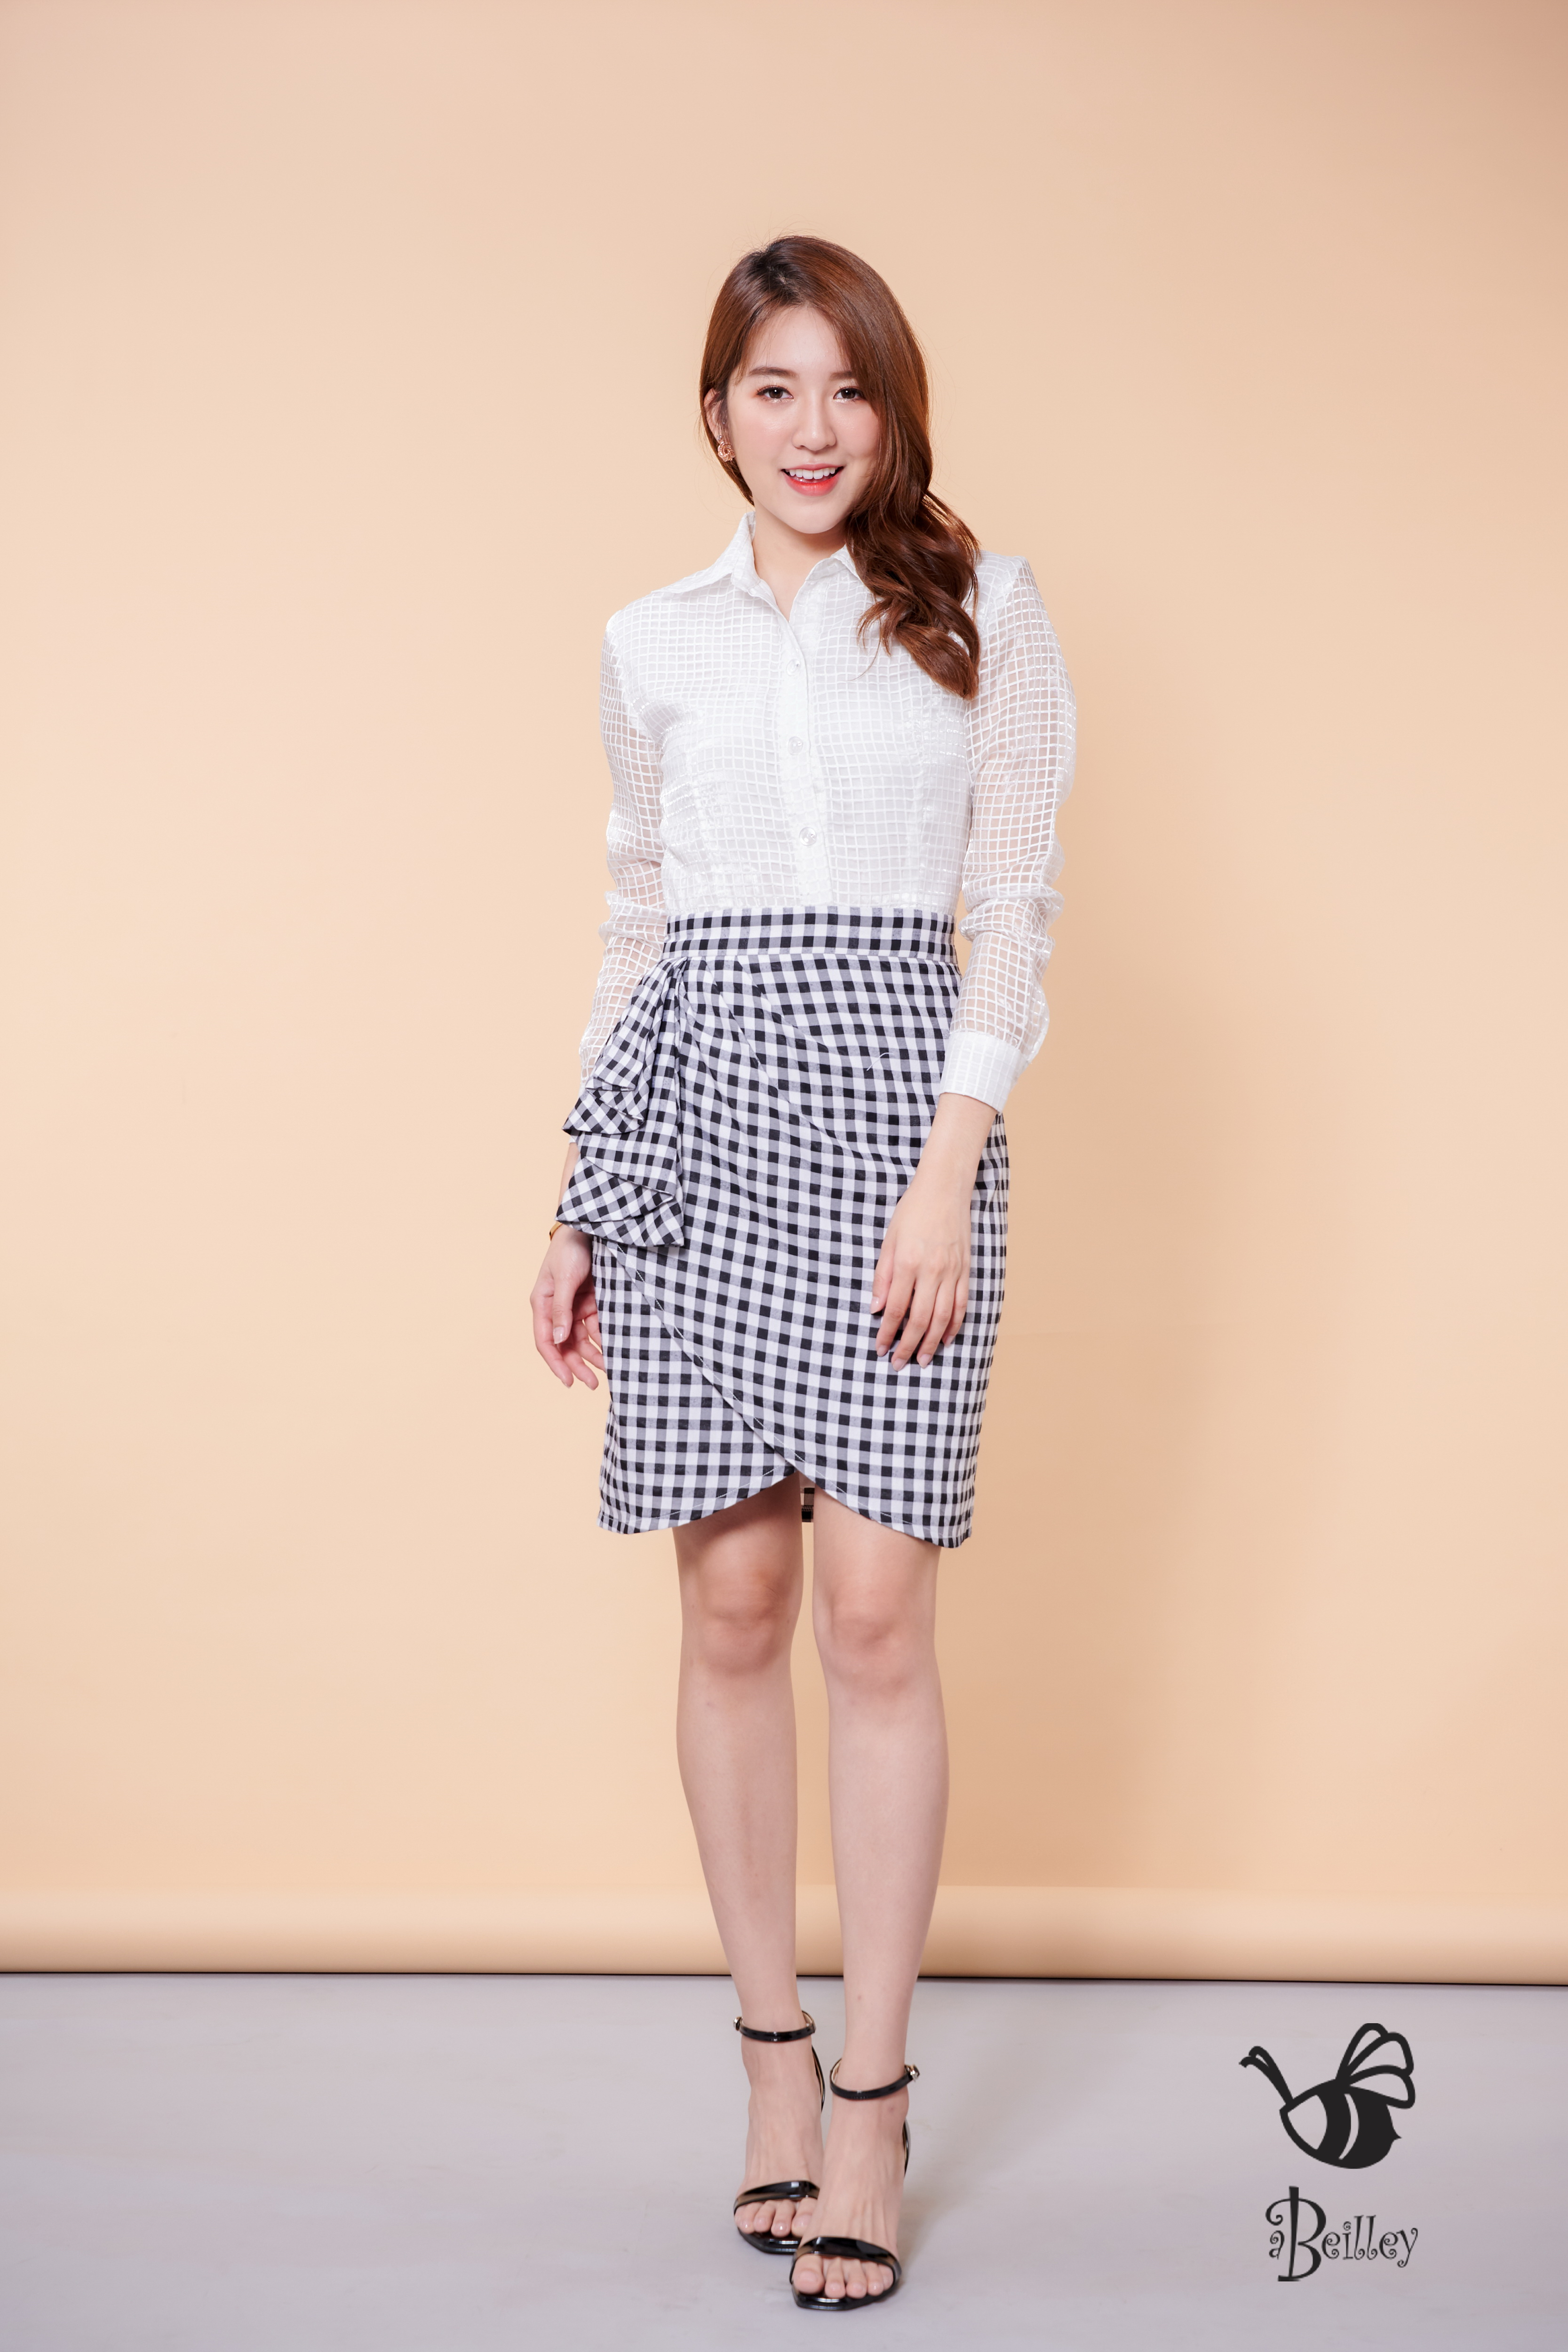 Crystal White Black Square Dress